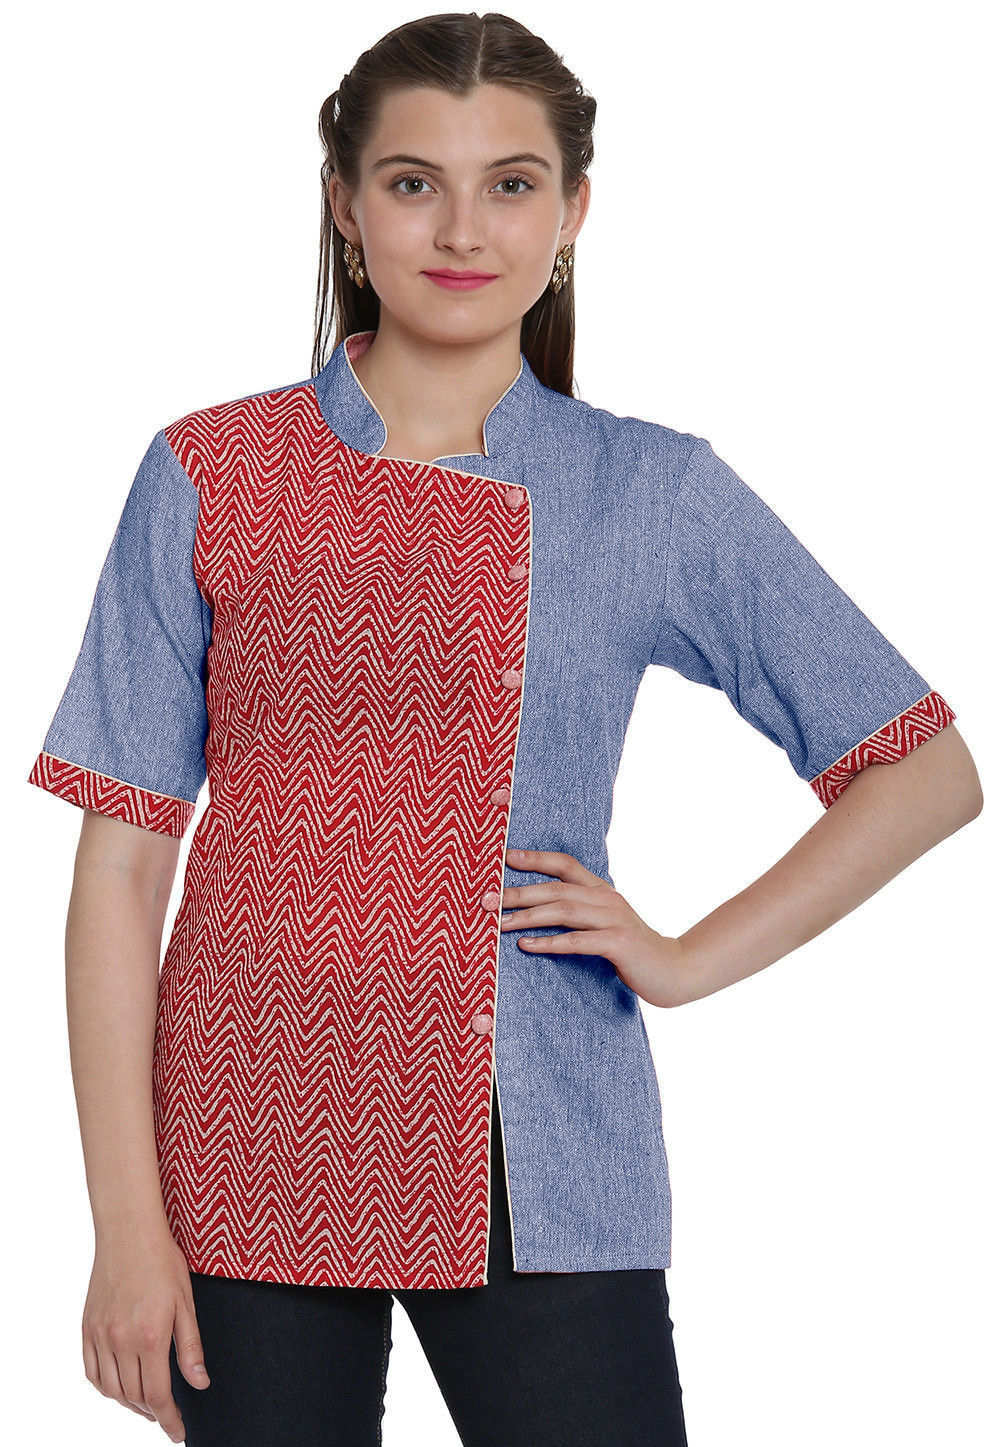 c841992b2bd73f Hand Block Printed Cotton Linen Top in Red and Light Blue   TUC222